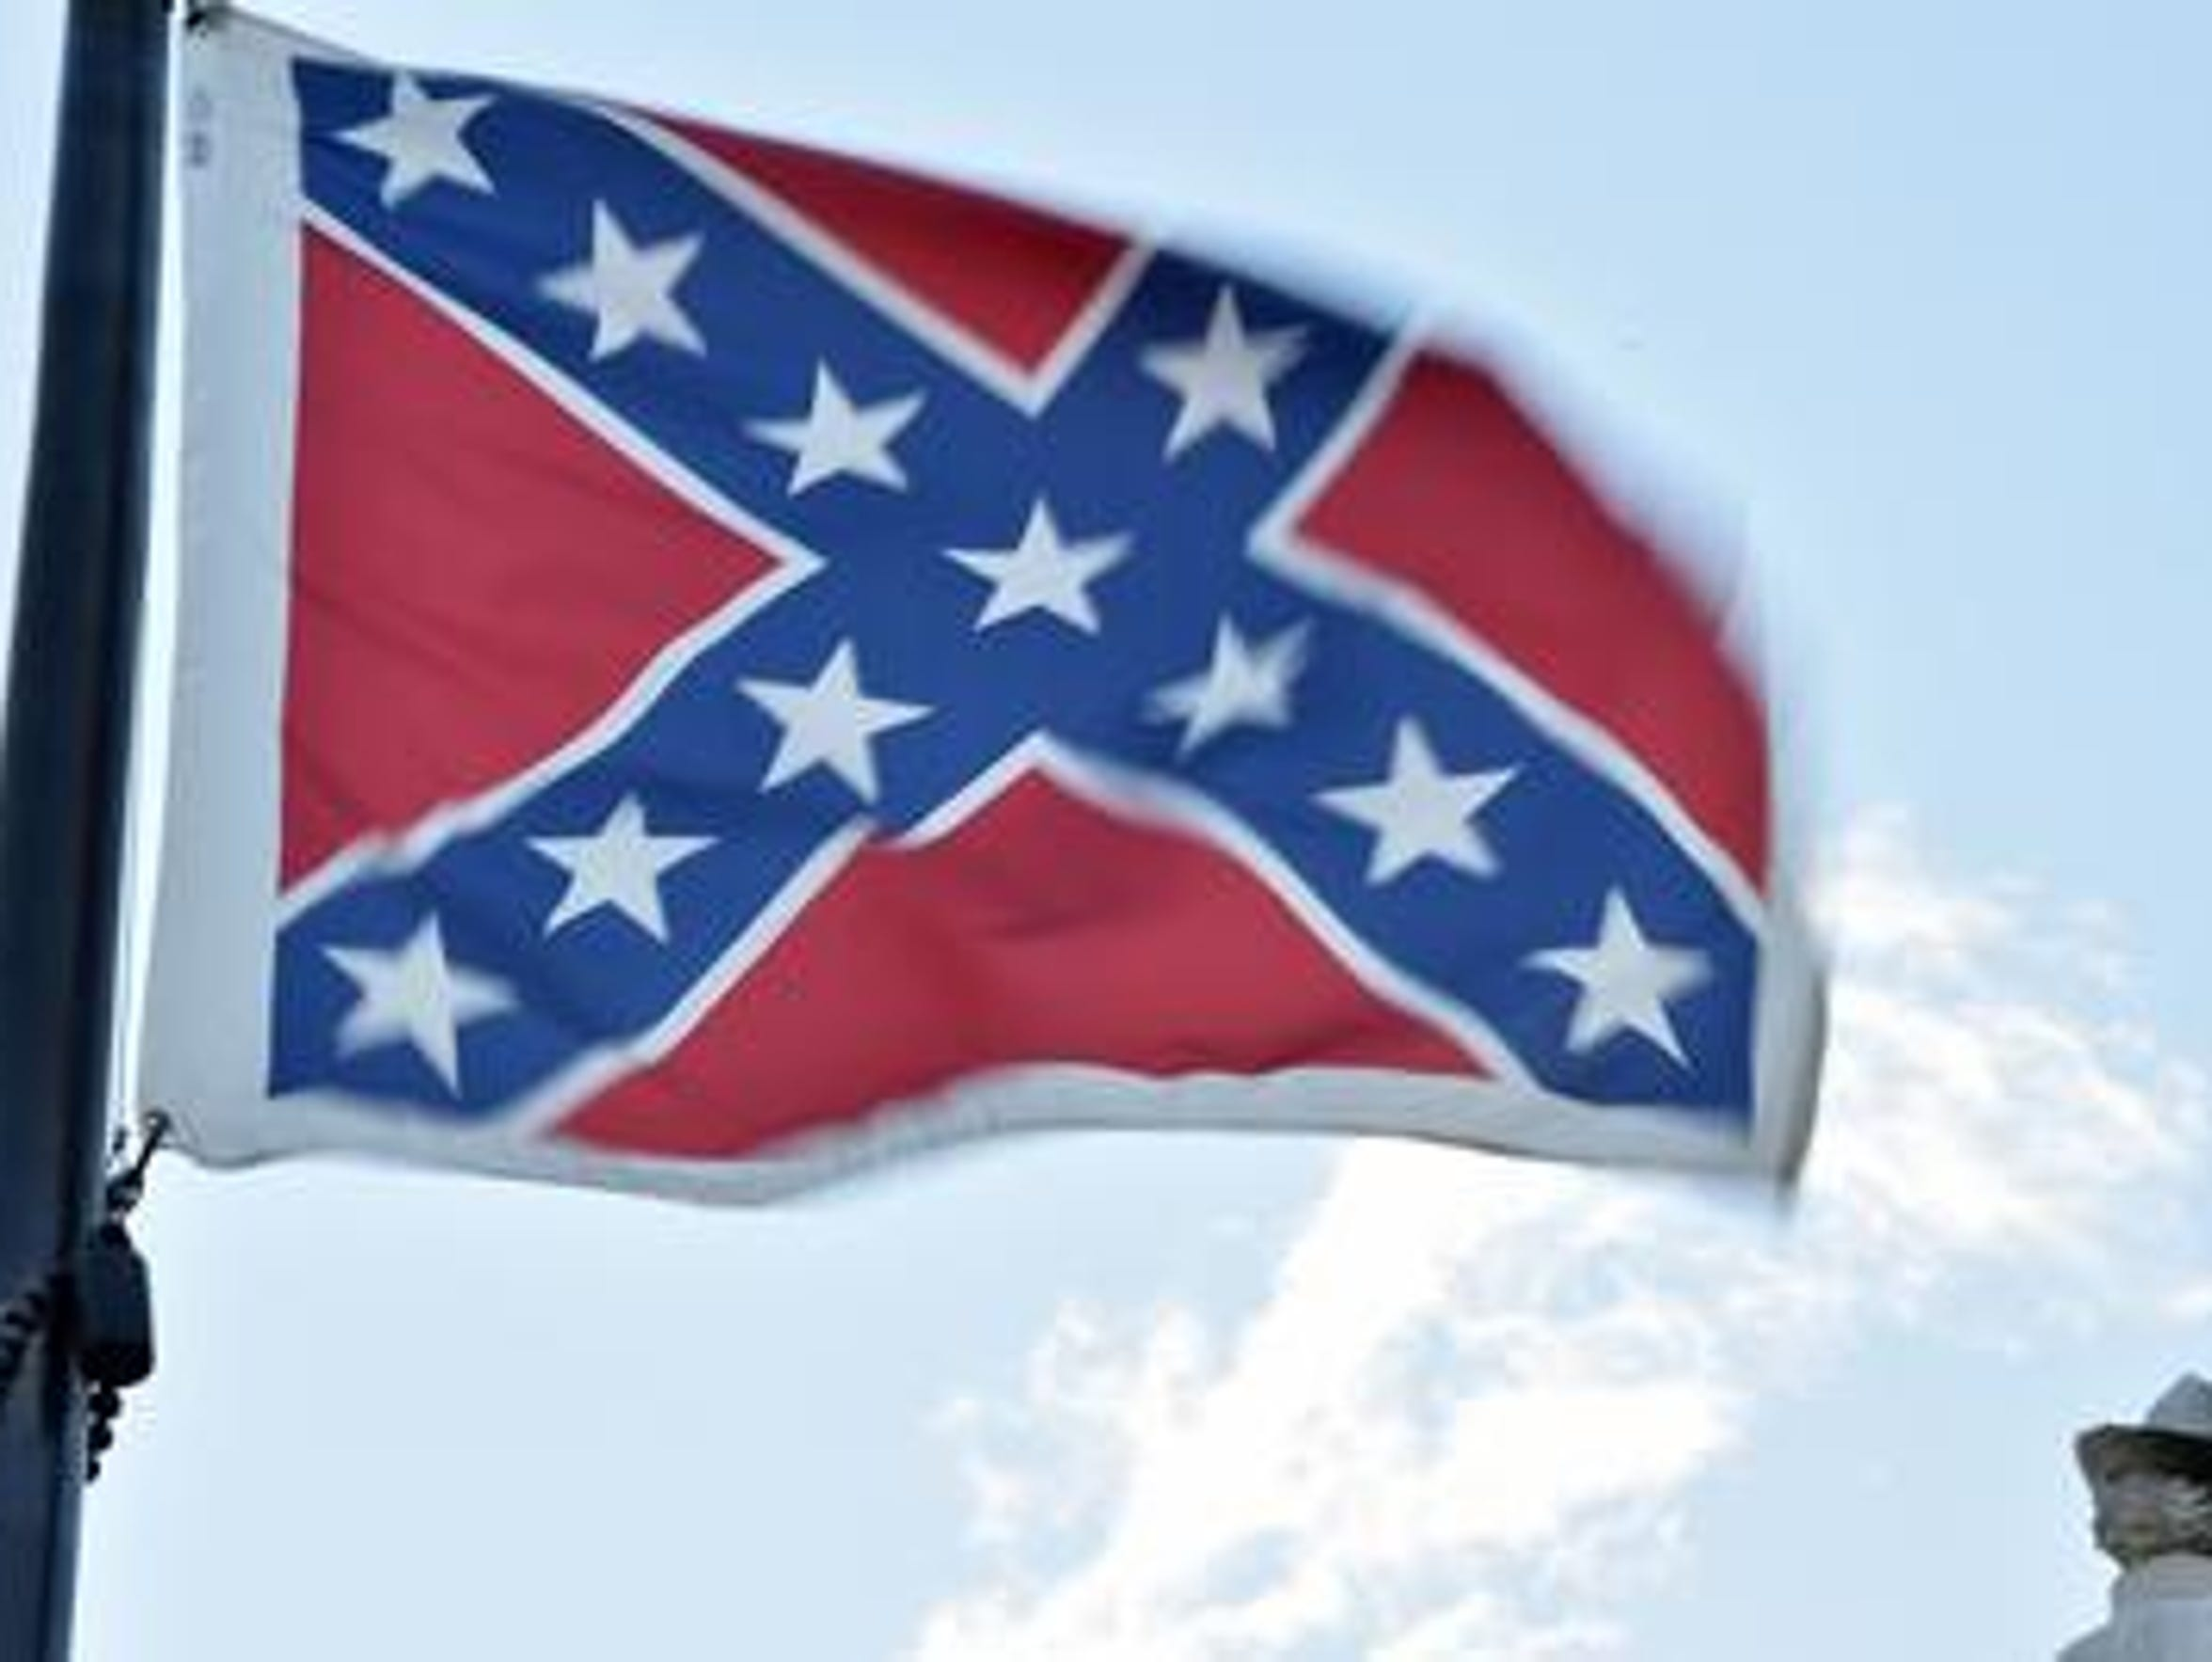 A civil case in Judge Christopher Lee's court involved allegations one party was flying a Confederate flag.